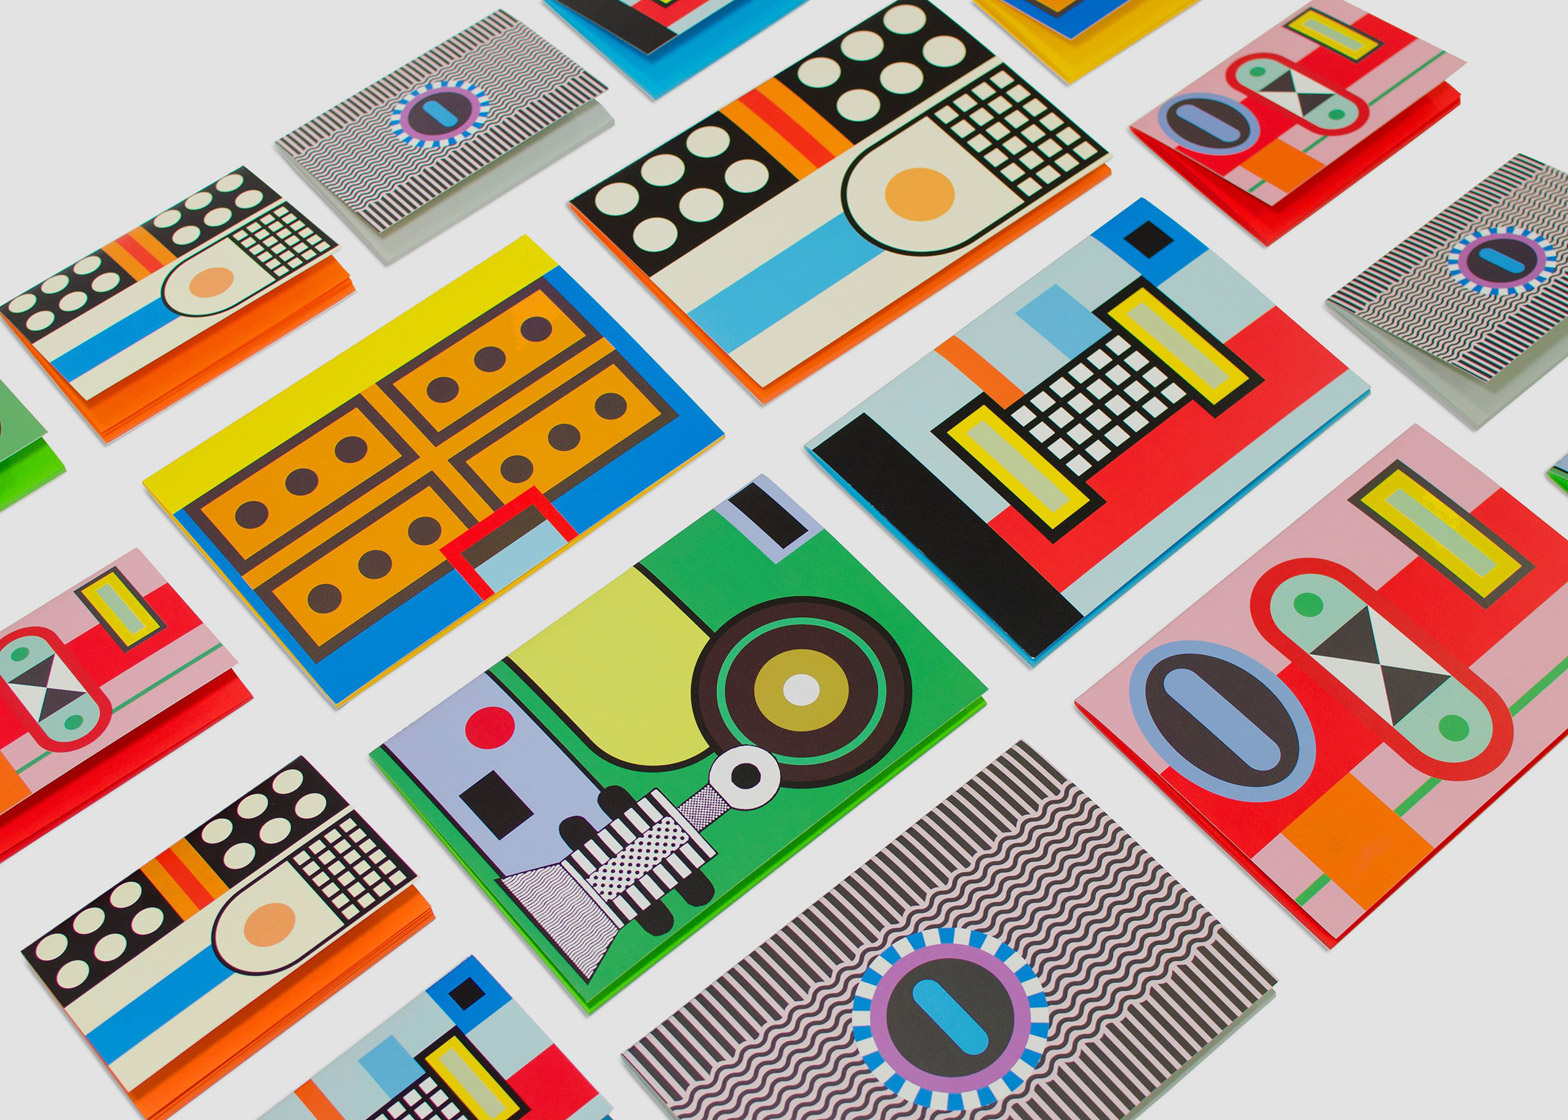 Fantastic notebook covers, in partnership with Rubberband.